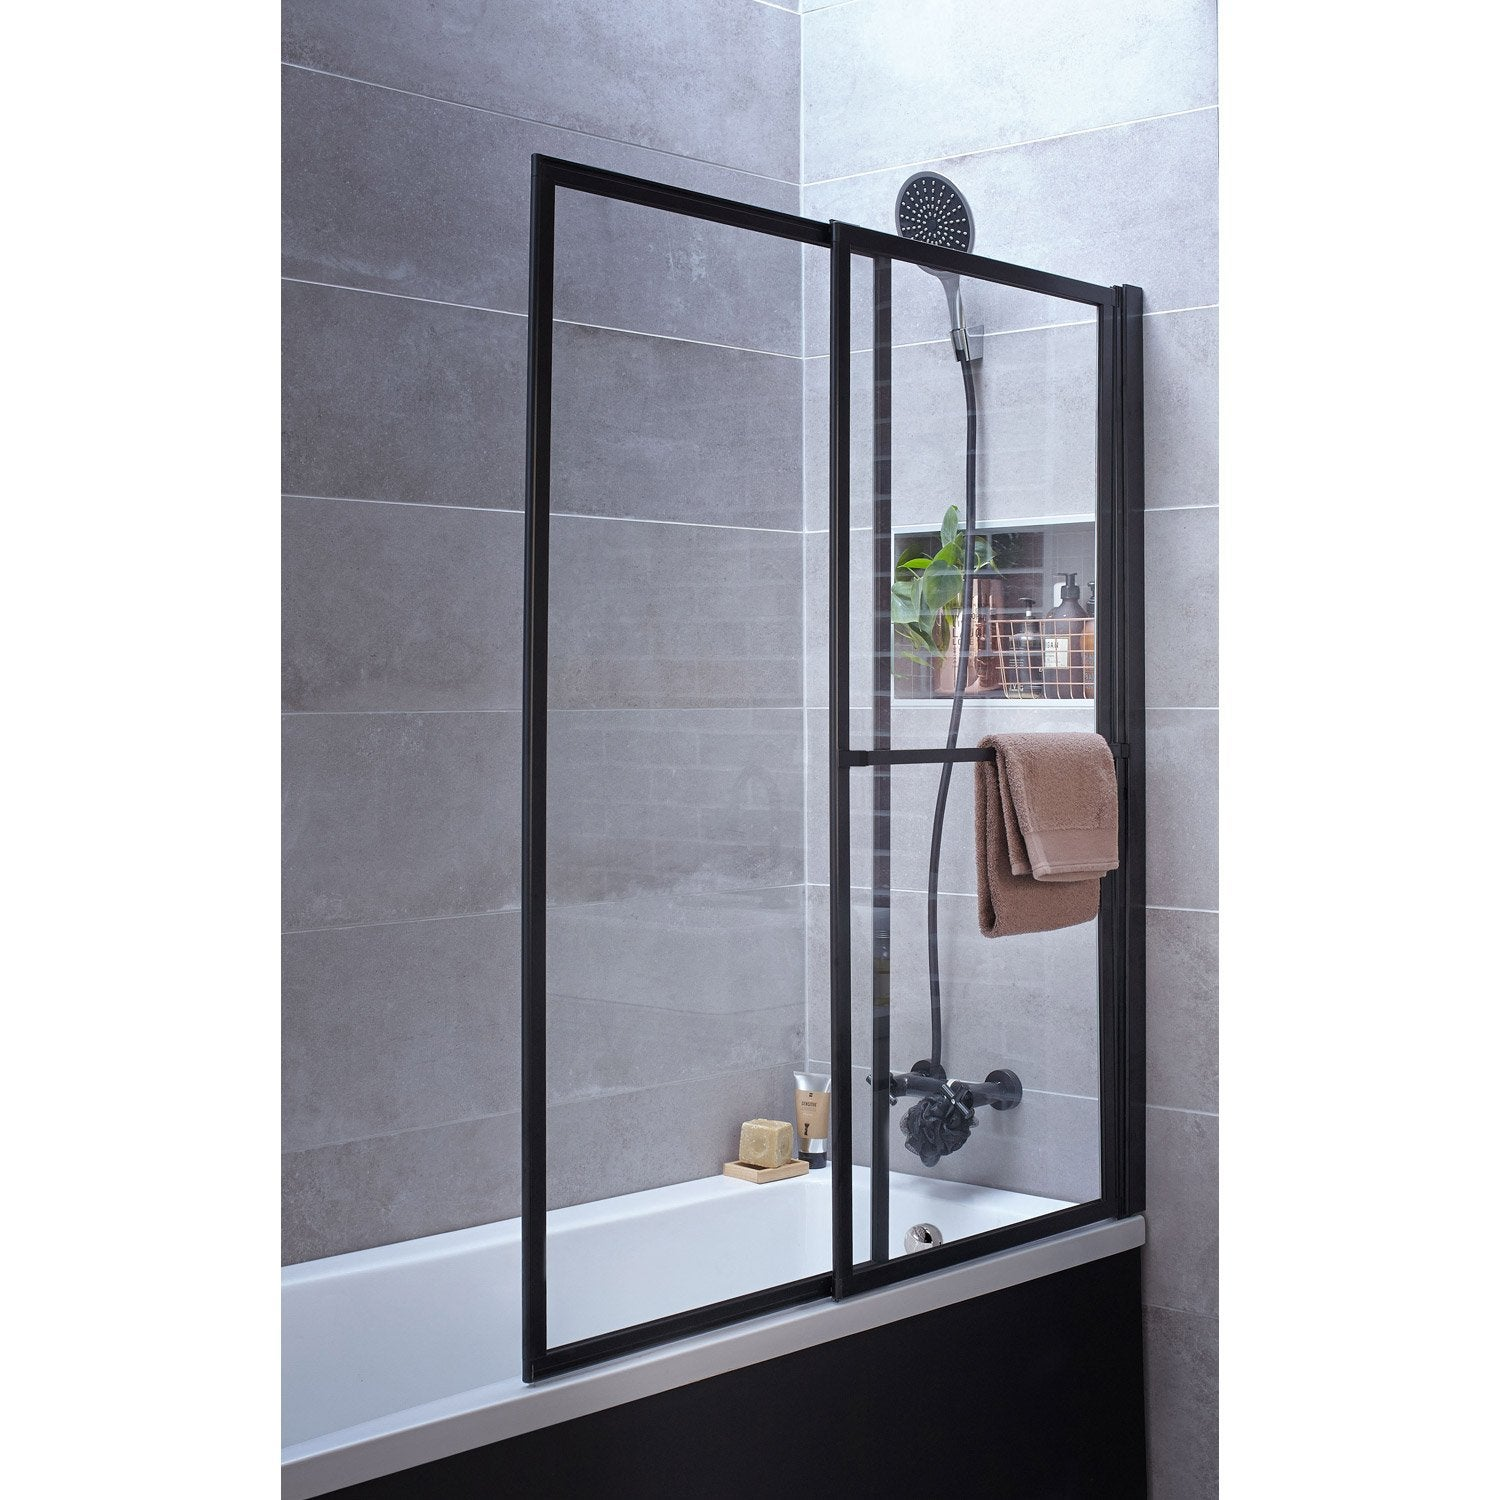 Pare baignoire ikea fashion designs - Pare douche leroy merlin ...